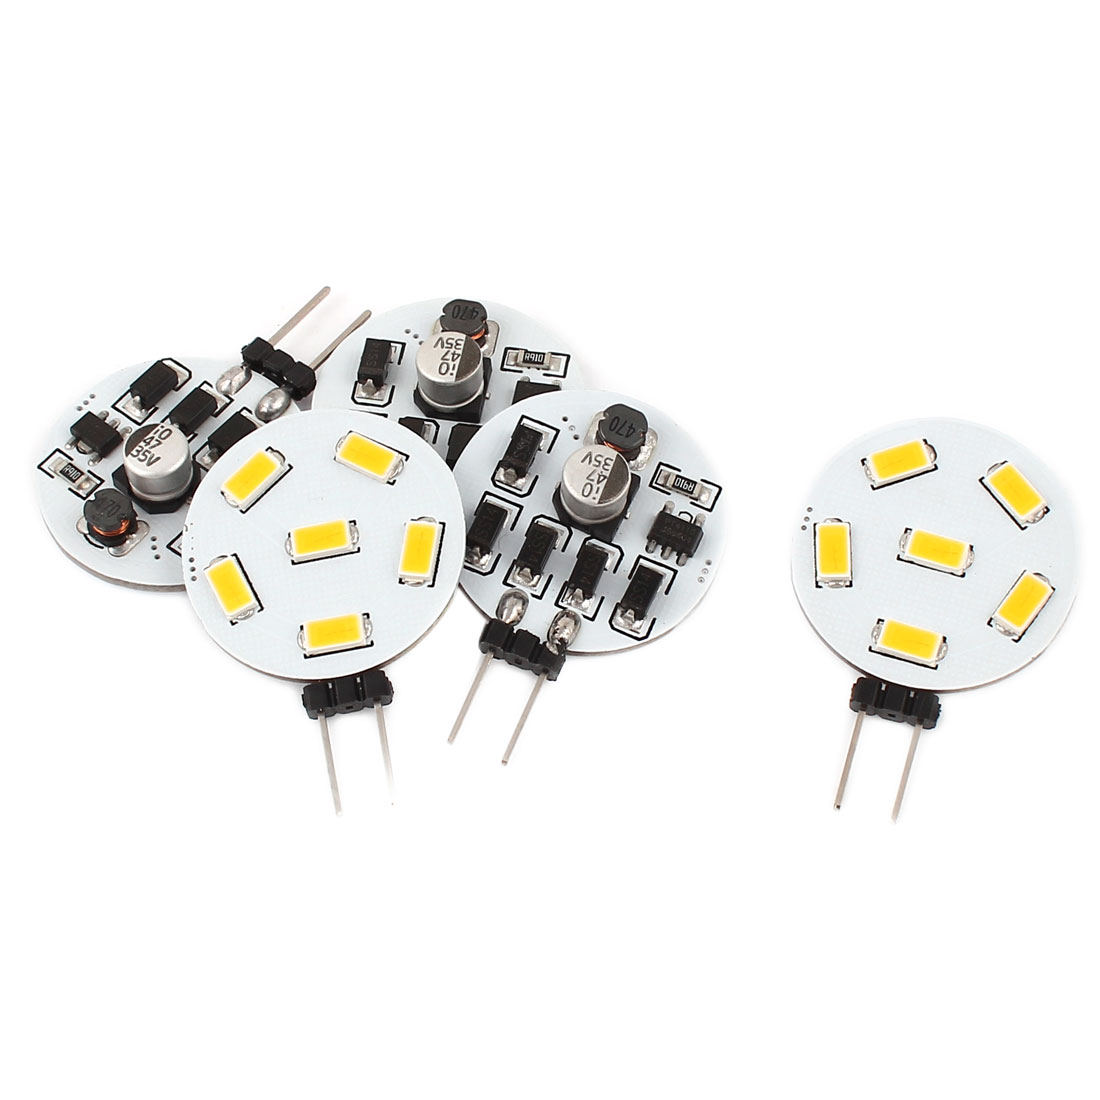 5 x 120 Degree G4 5730 SMD 6 LED Cabinet Marine Boat Light Bulb Lamp Warm White